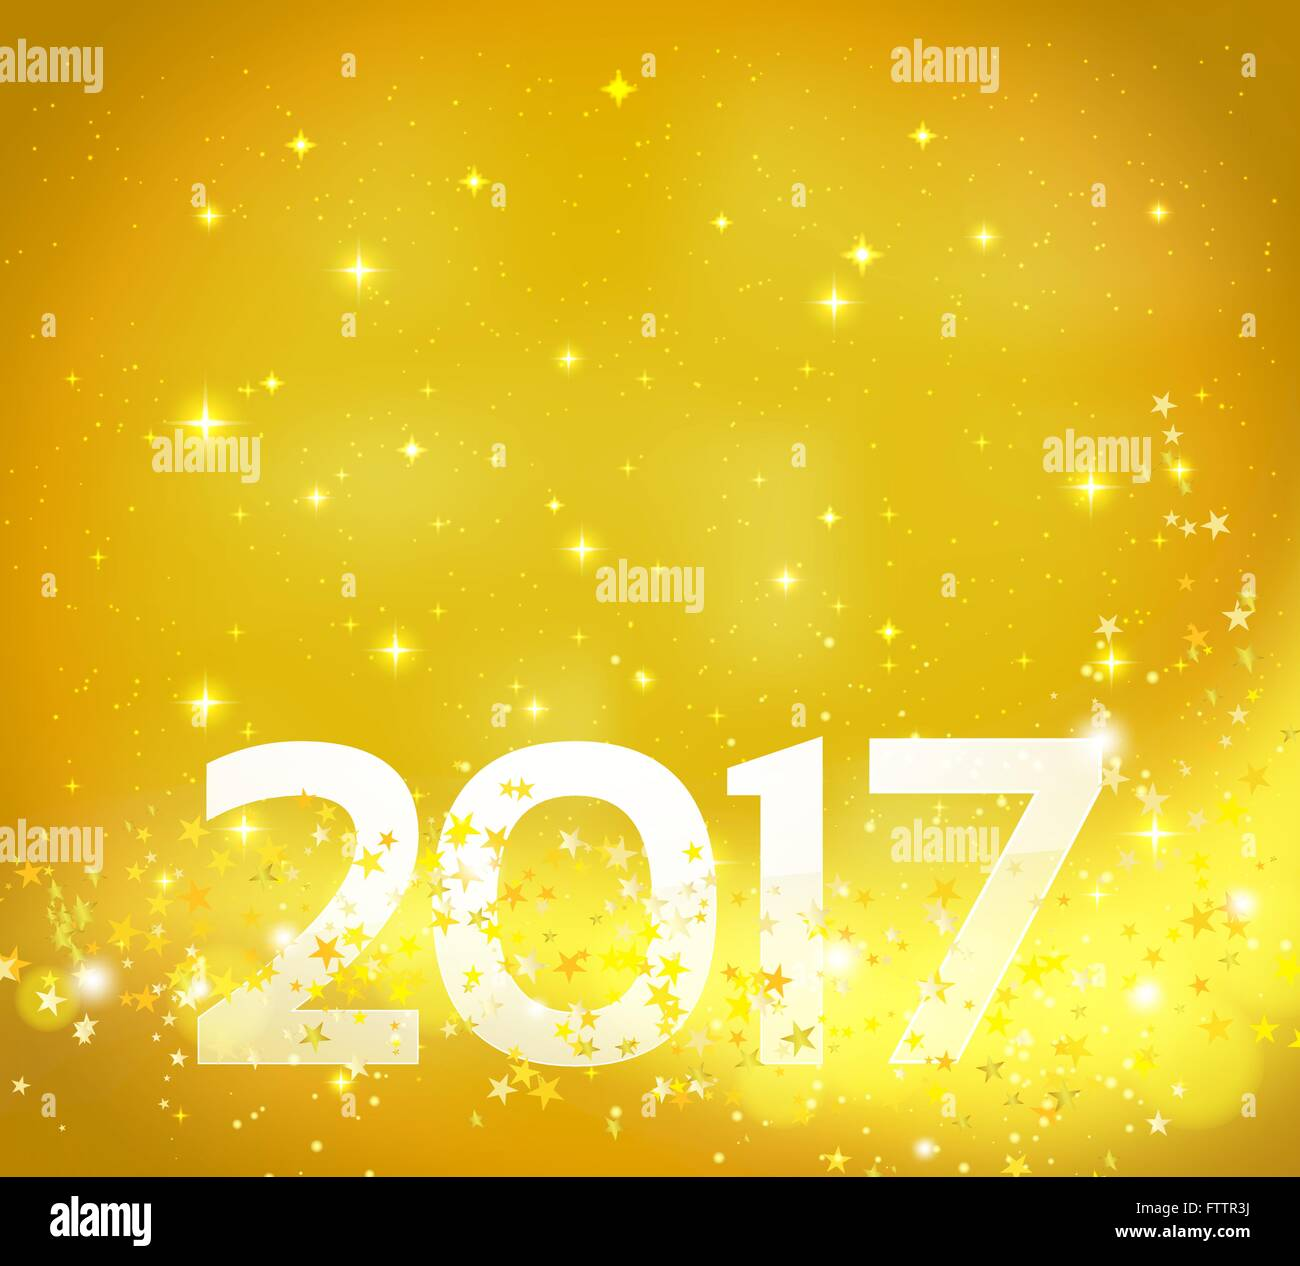 golden abstract background with 2017 number happy new year backgound vector design template